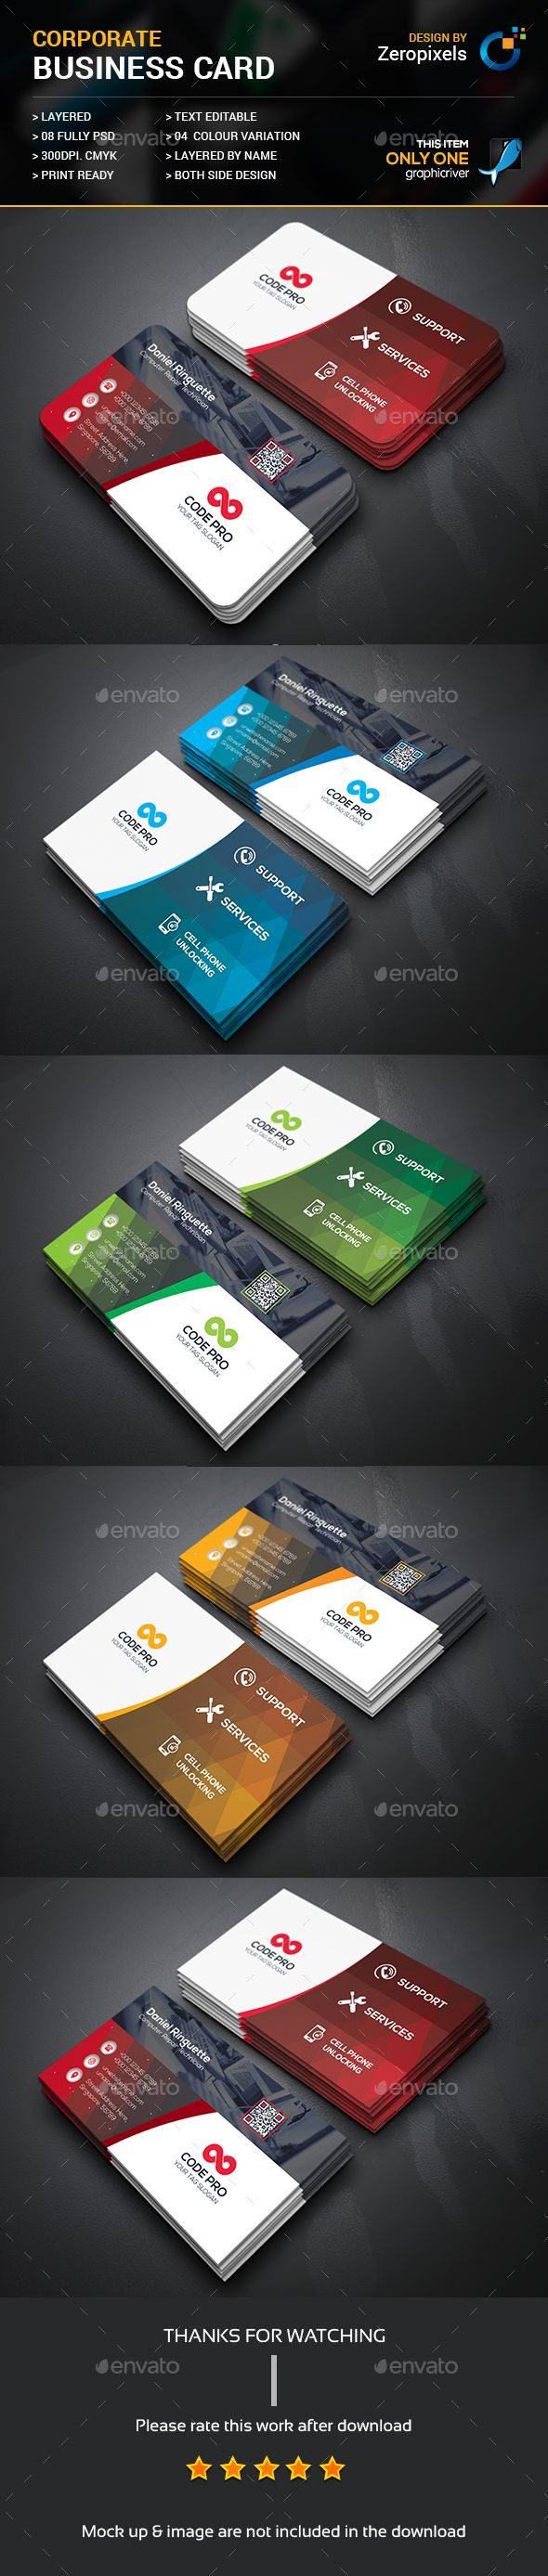 Best 25+ Mobile computing ideas on Pinterest | Wallpapers for ...